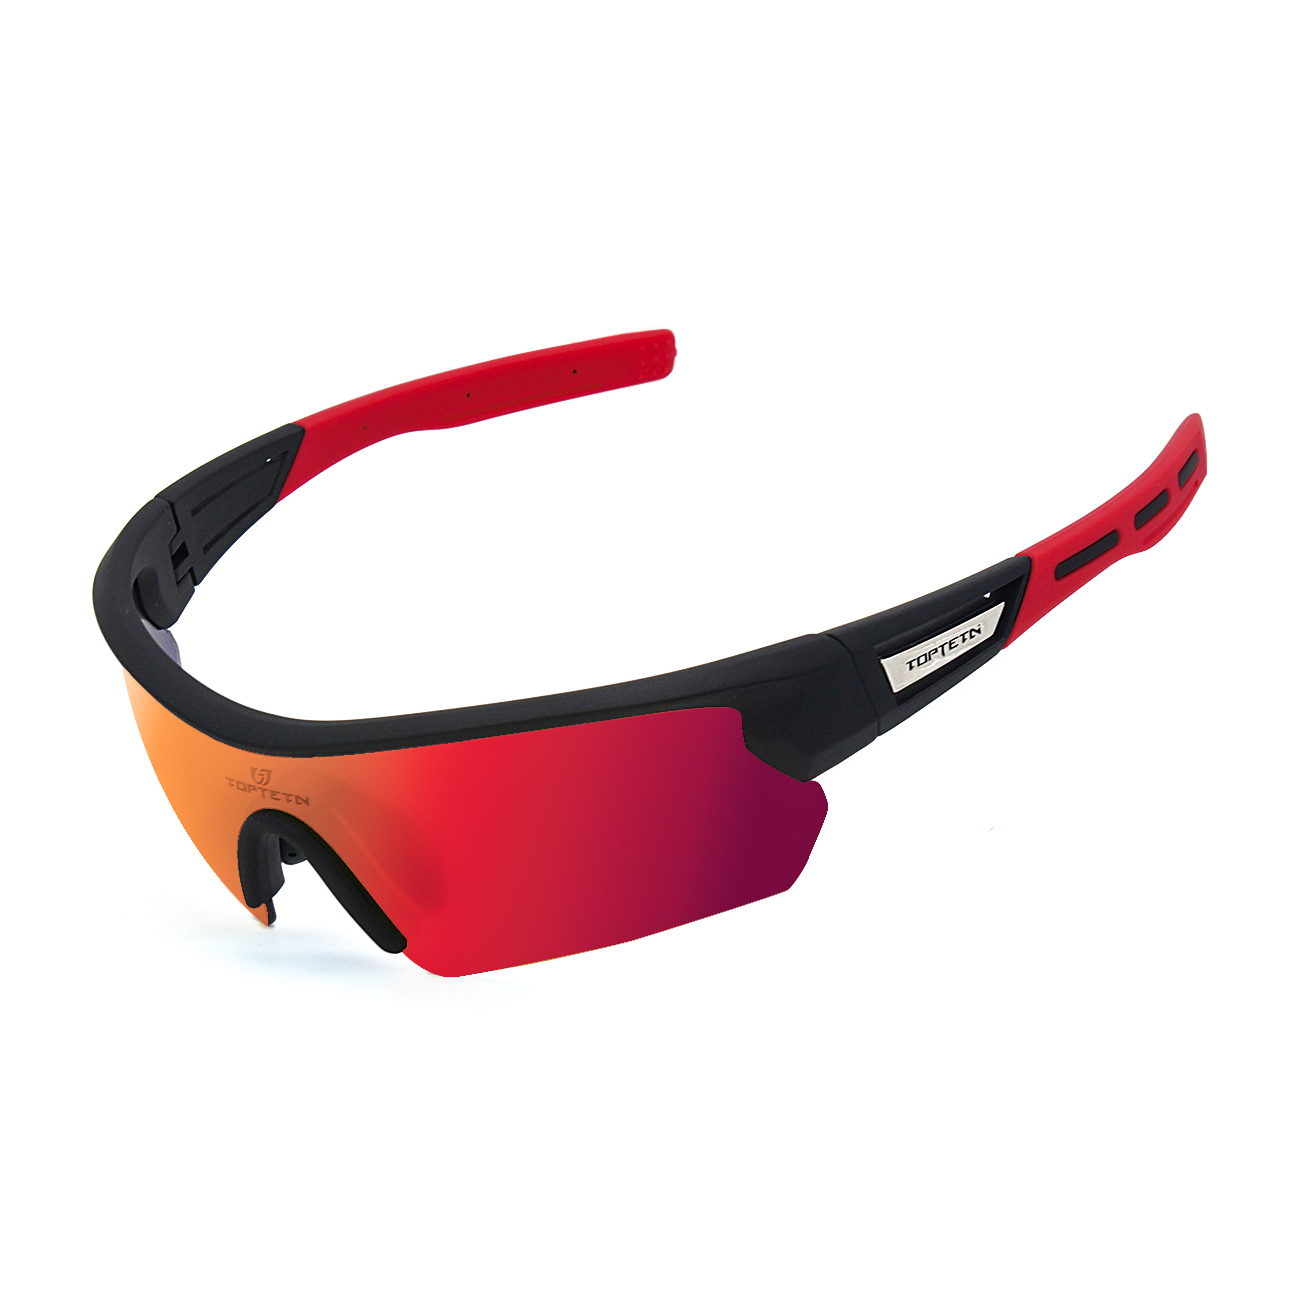 2019 Polarized <font><b>5</b></font> <font><b>Lens</b></font> Cycling <font><b>Glasses</b></font> Road <font><b>Bike</b></font> Cycling Eyewear Cycling Sunglasses MTB Mountain Bicycle Cycling Goggles image